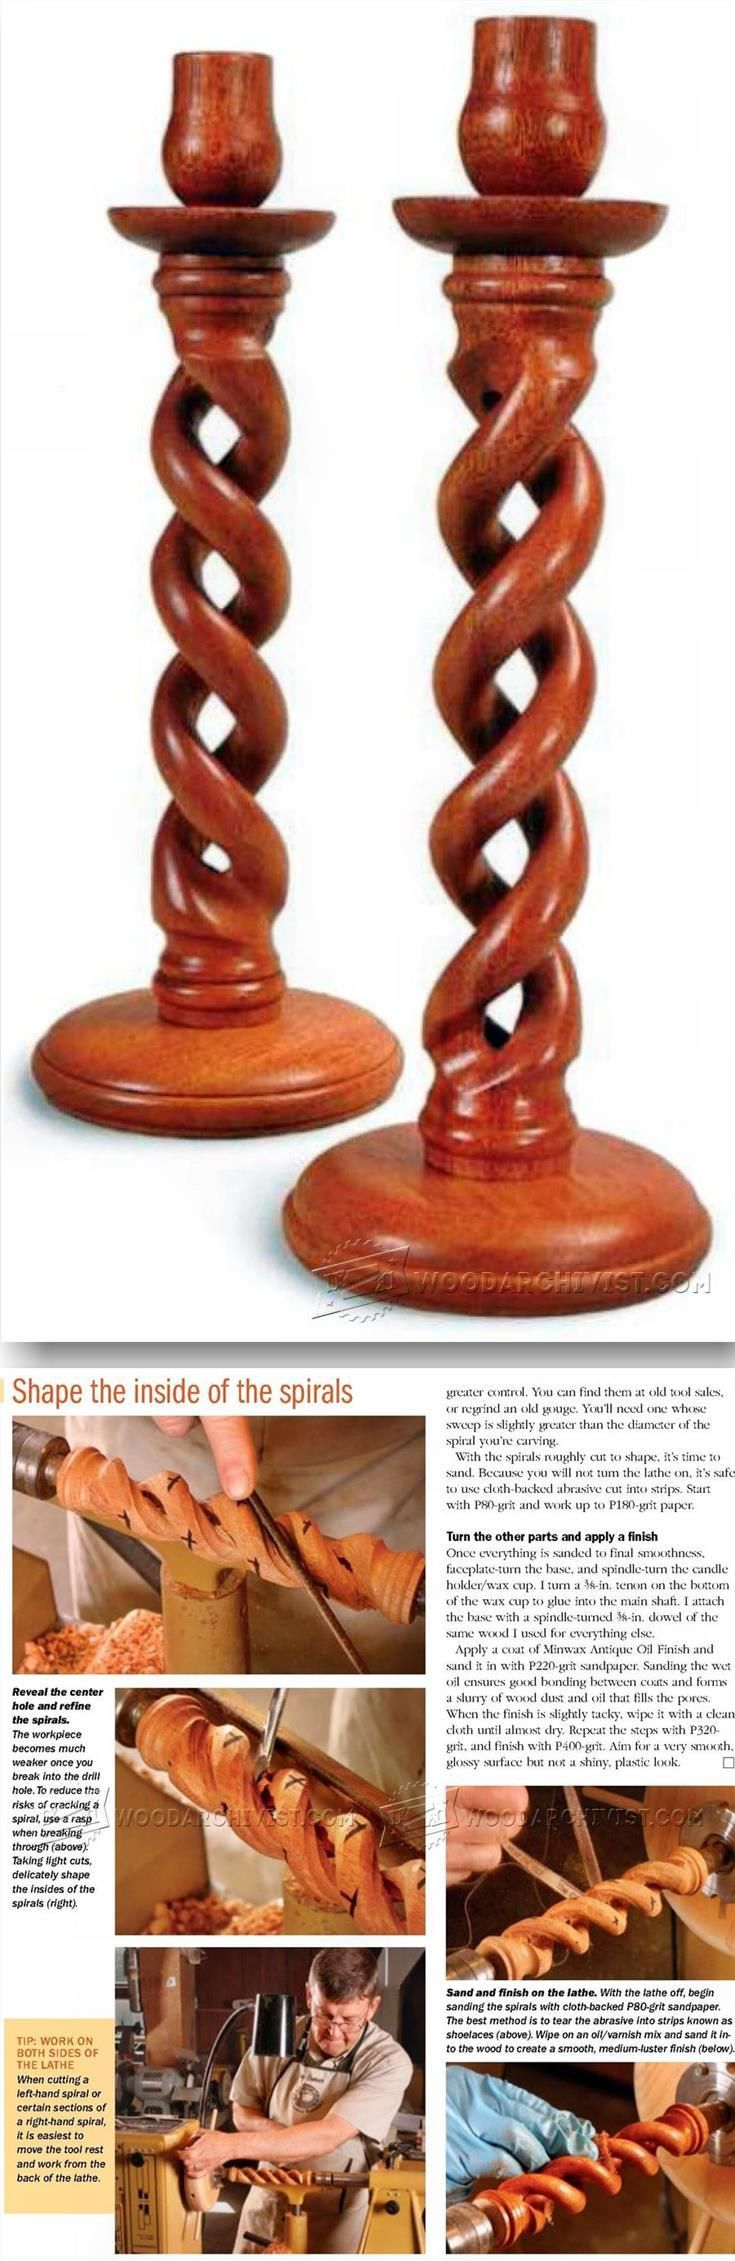 Woodturning Barley Twist Candlestick - Woodturning Projects and Techniques | WoodArchivist.com